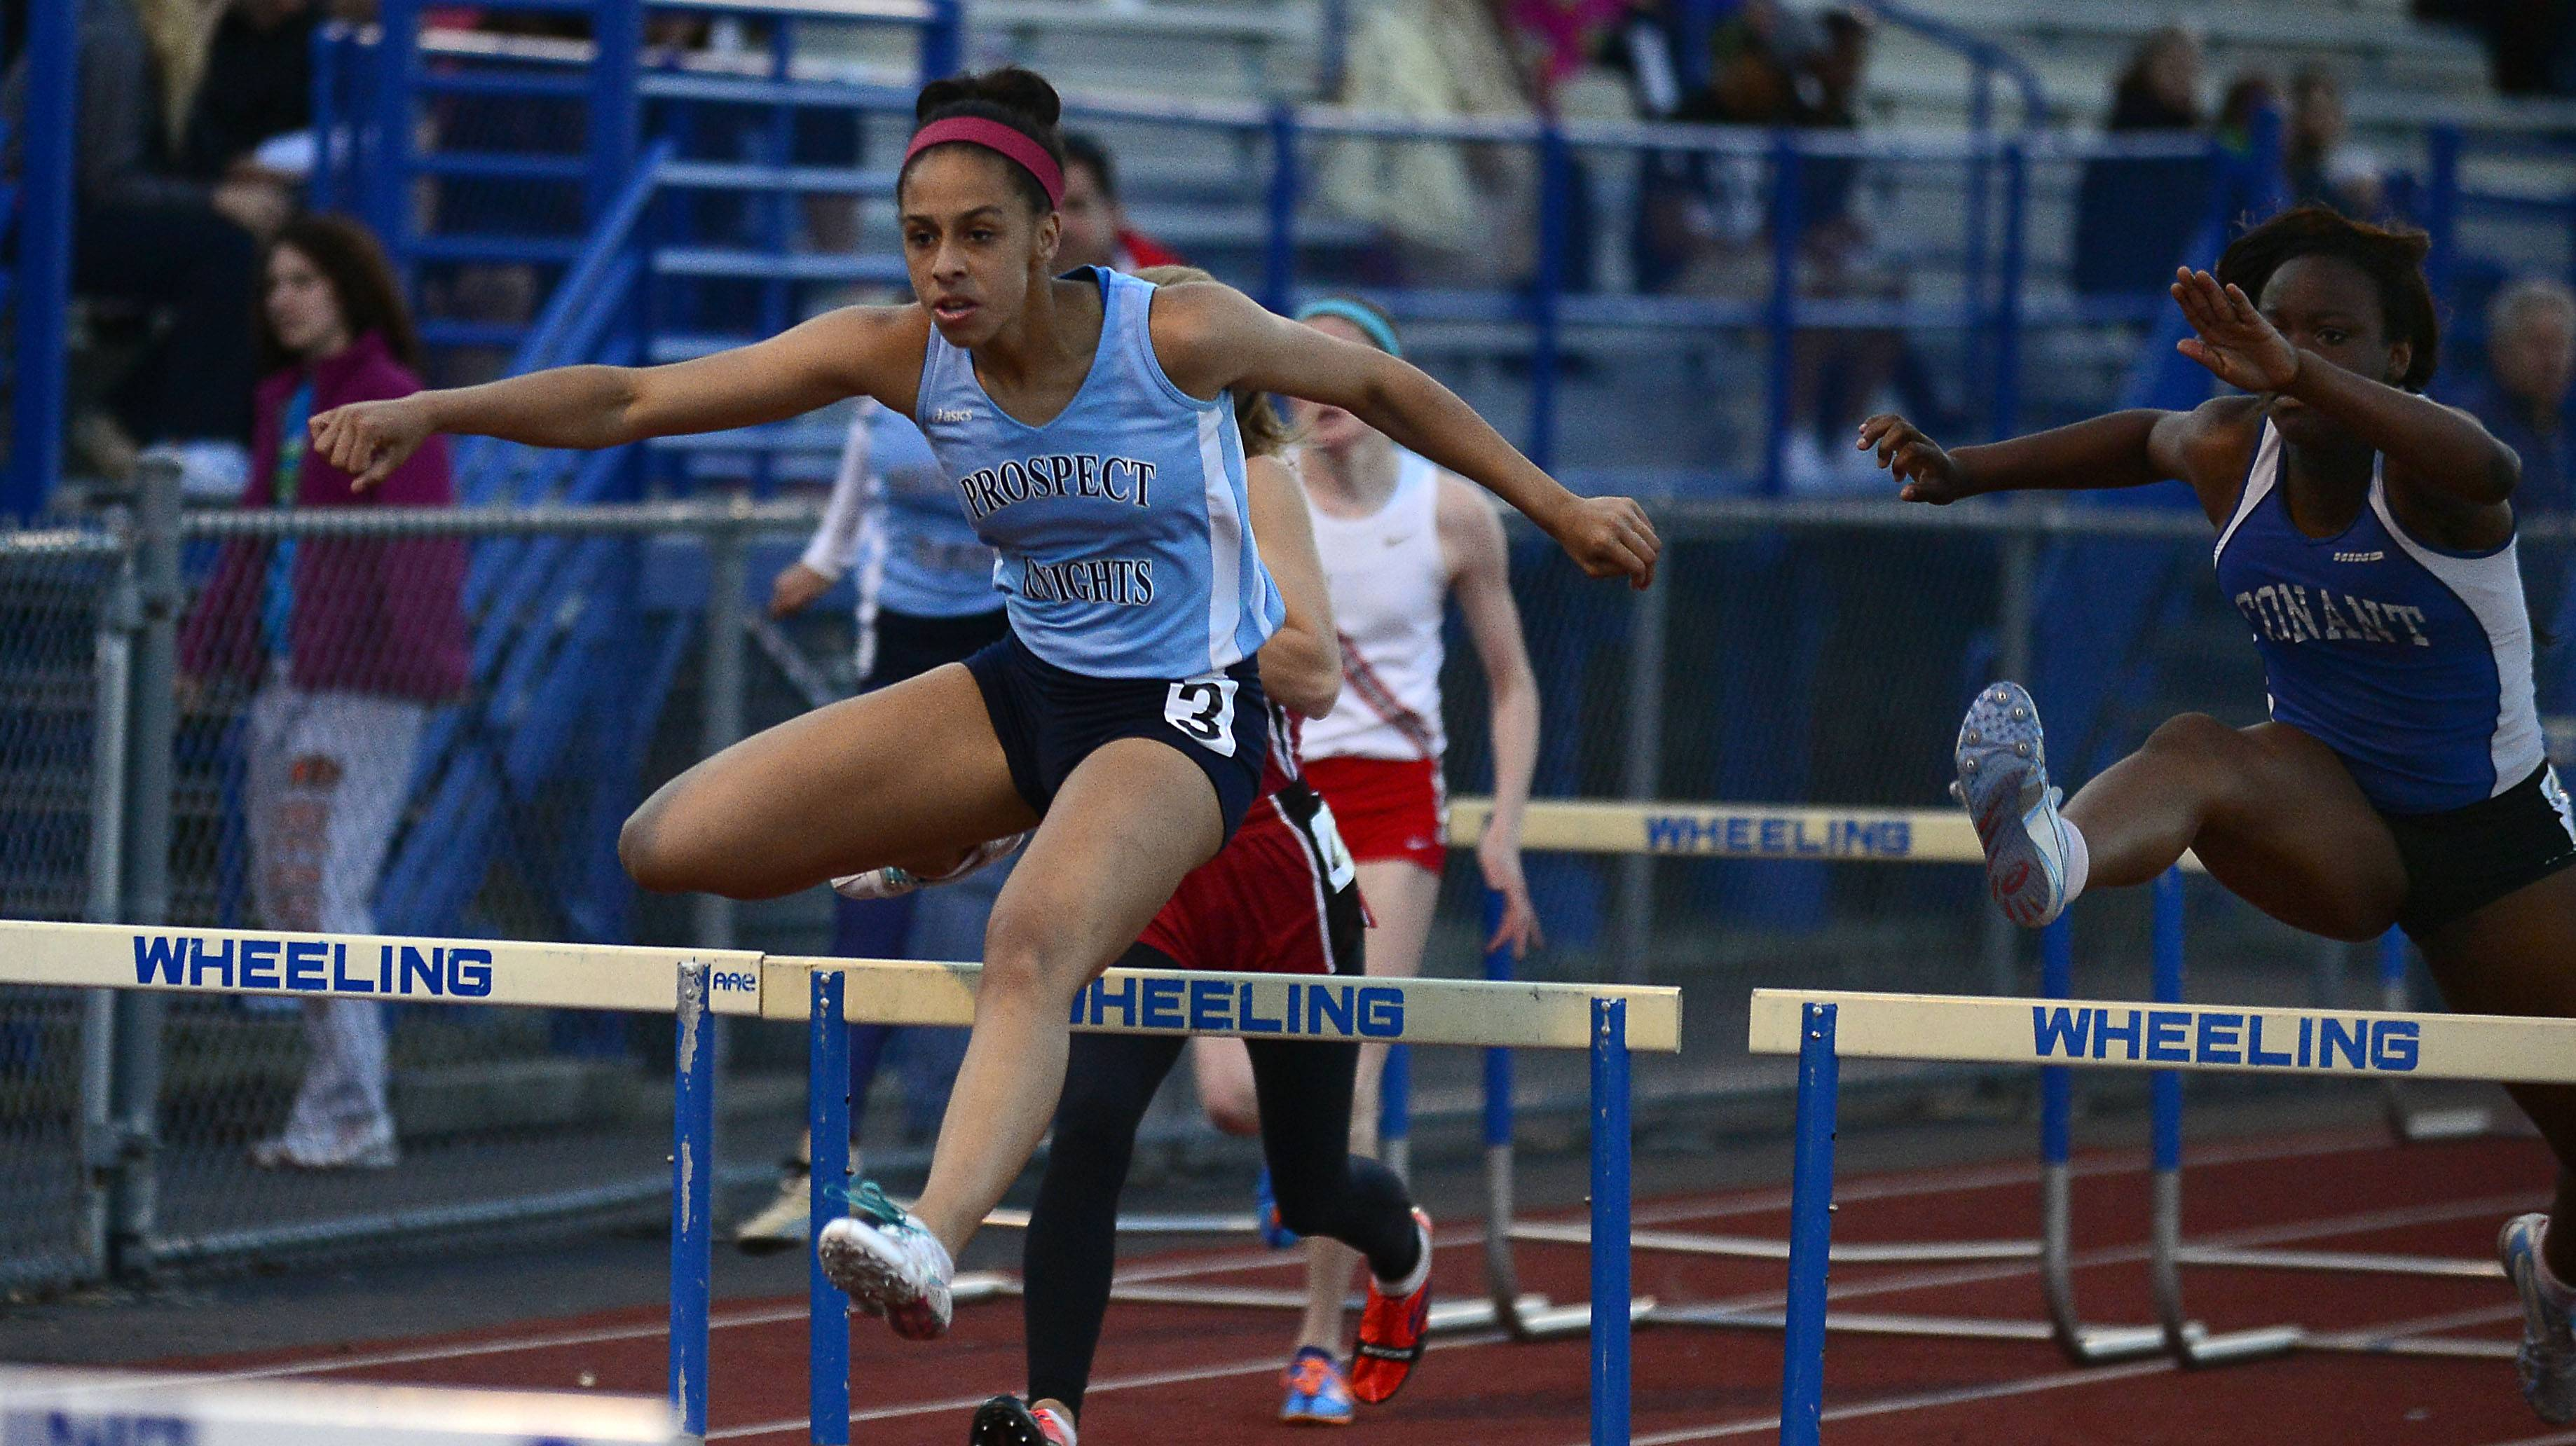 Maya Mason of Prospect competes in the 100-meter hurdles in the MSL meet at Wheeling on Friday.